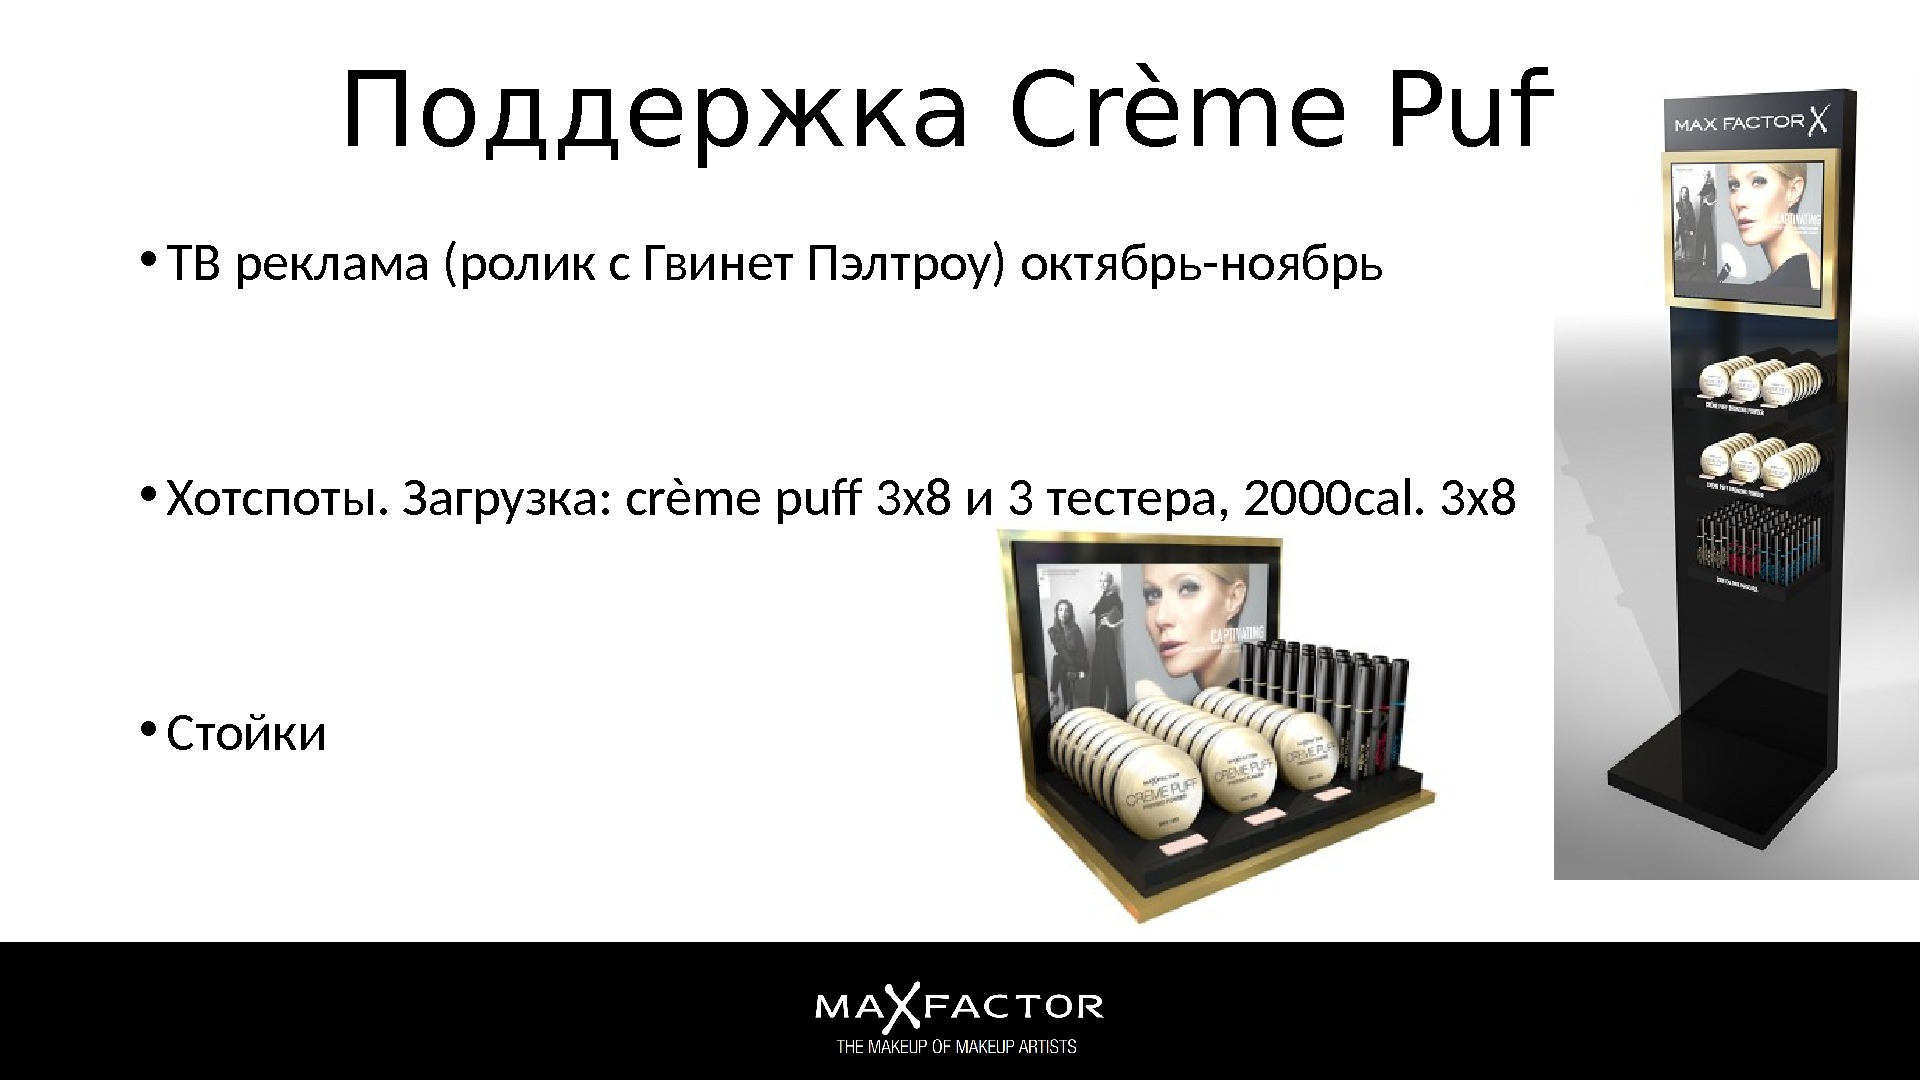 *Source: In Vivo Imaging Study, 3 strokes, n=40, UK 2011 NEW Max Factor Whipped Crème Foundation